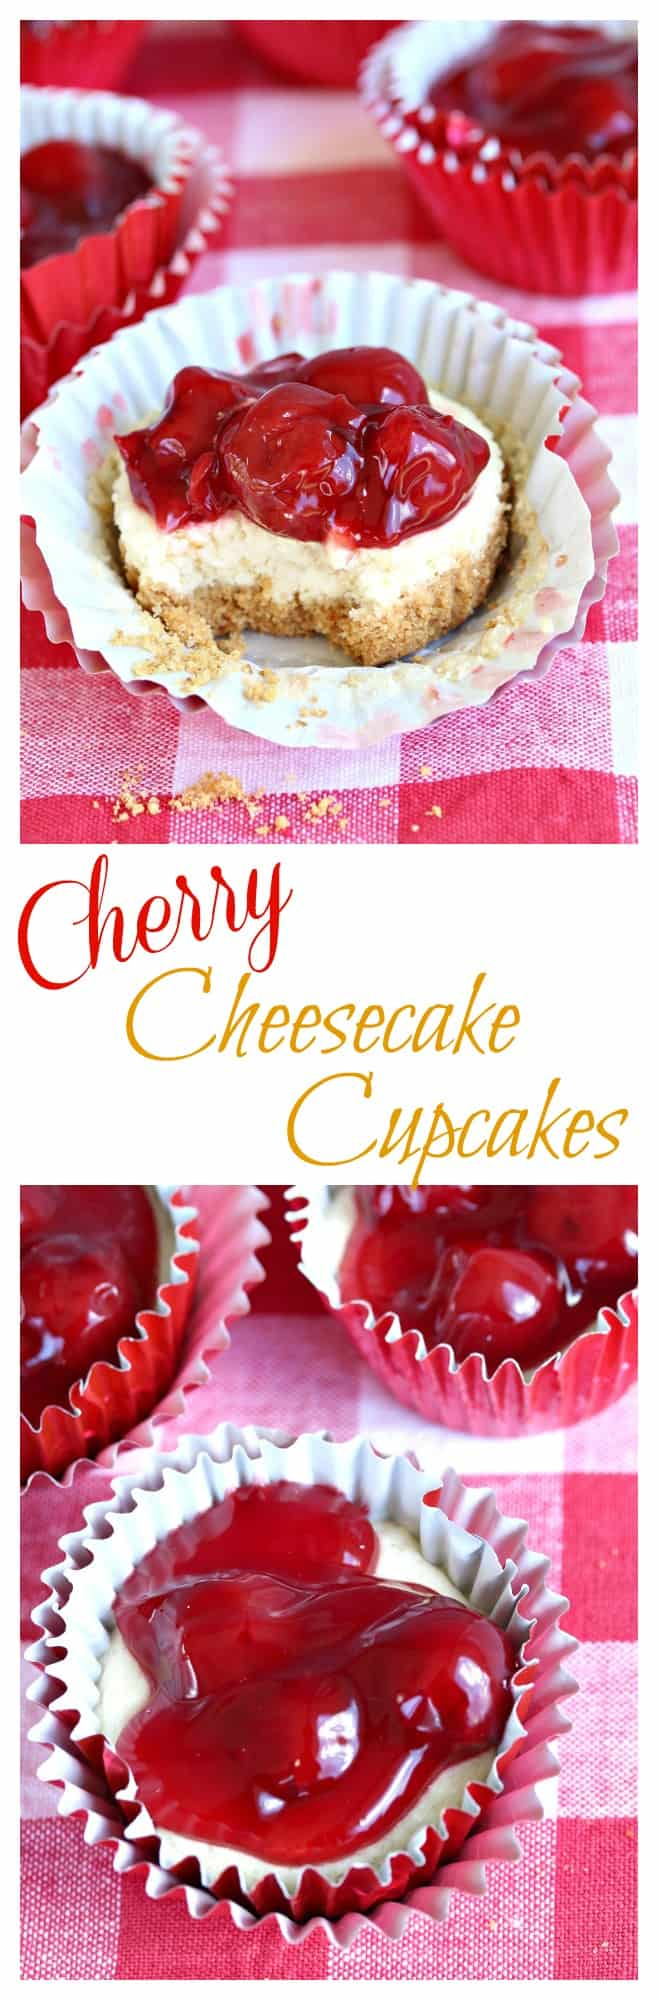 A sweet and buttery graham cracker crust topped with creamy cheesecake filling and mouth-watering cherries. | The Cozy Cook | #cupcakes #cheesecake #dessert #cherries